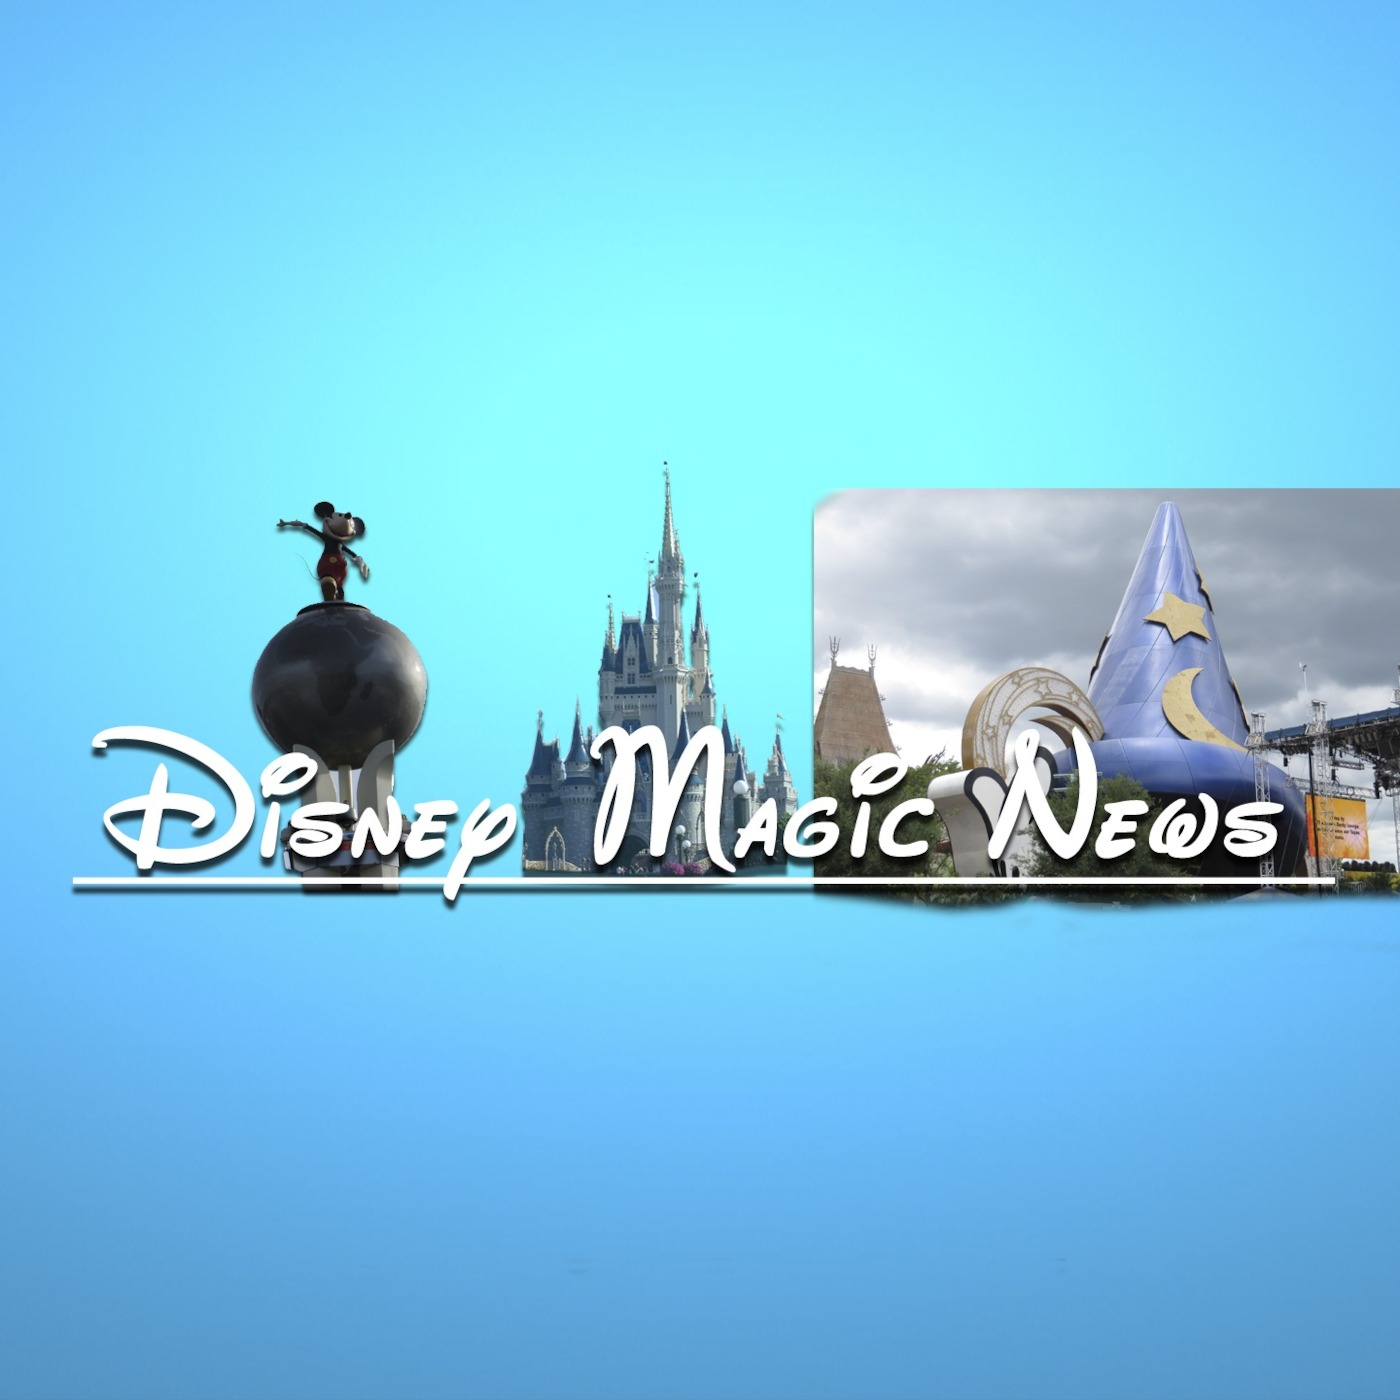 Disney Magic News